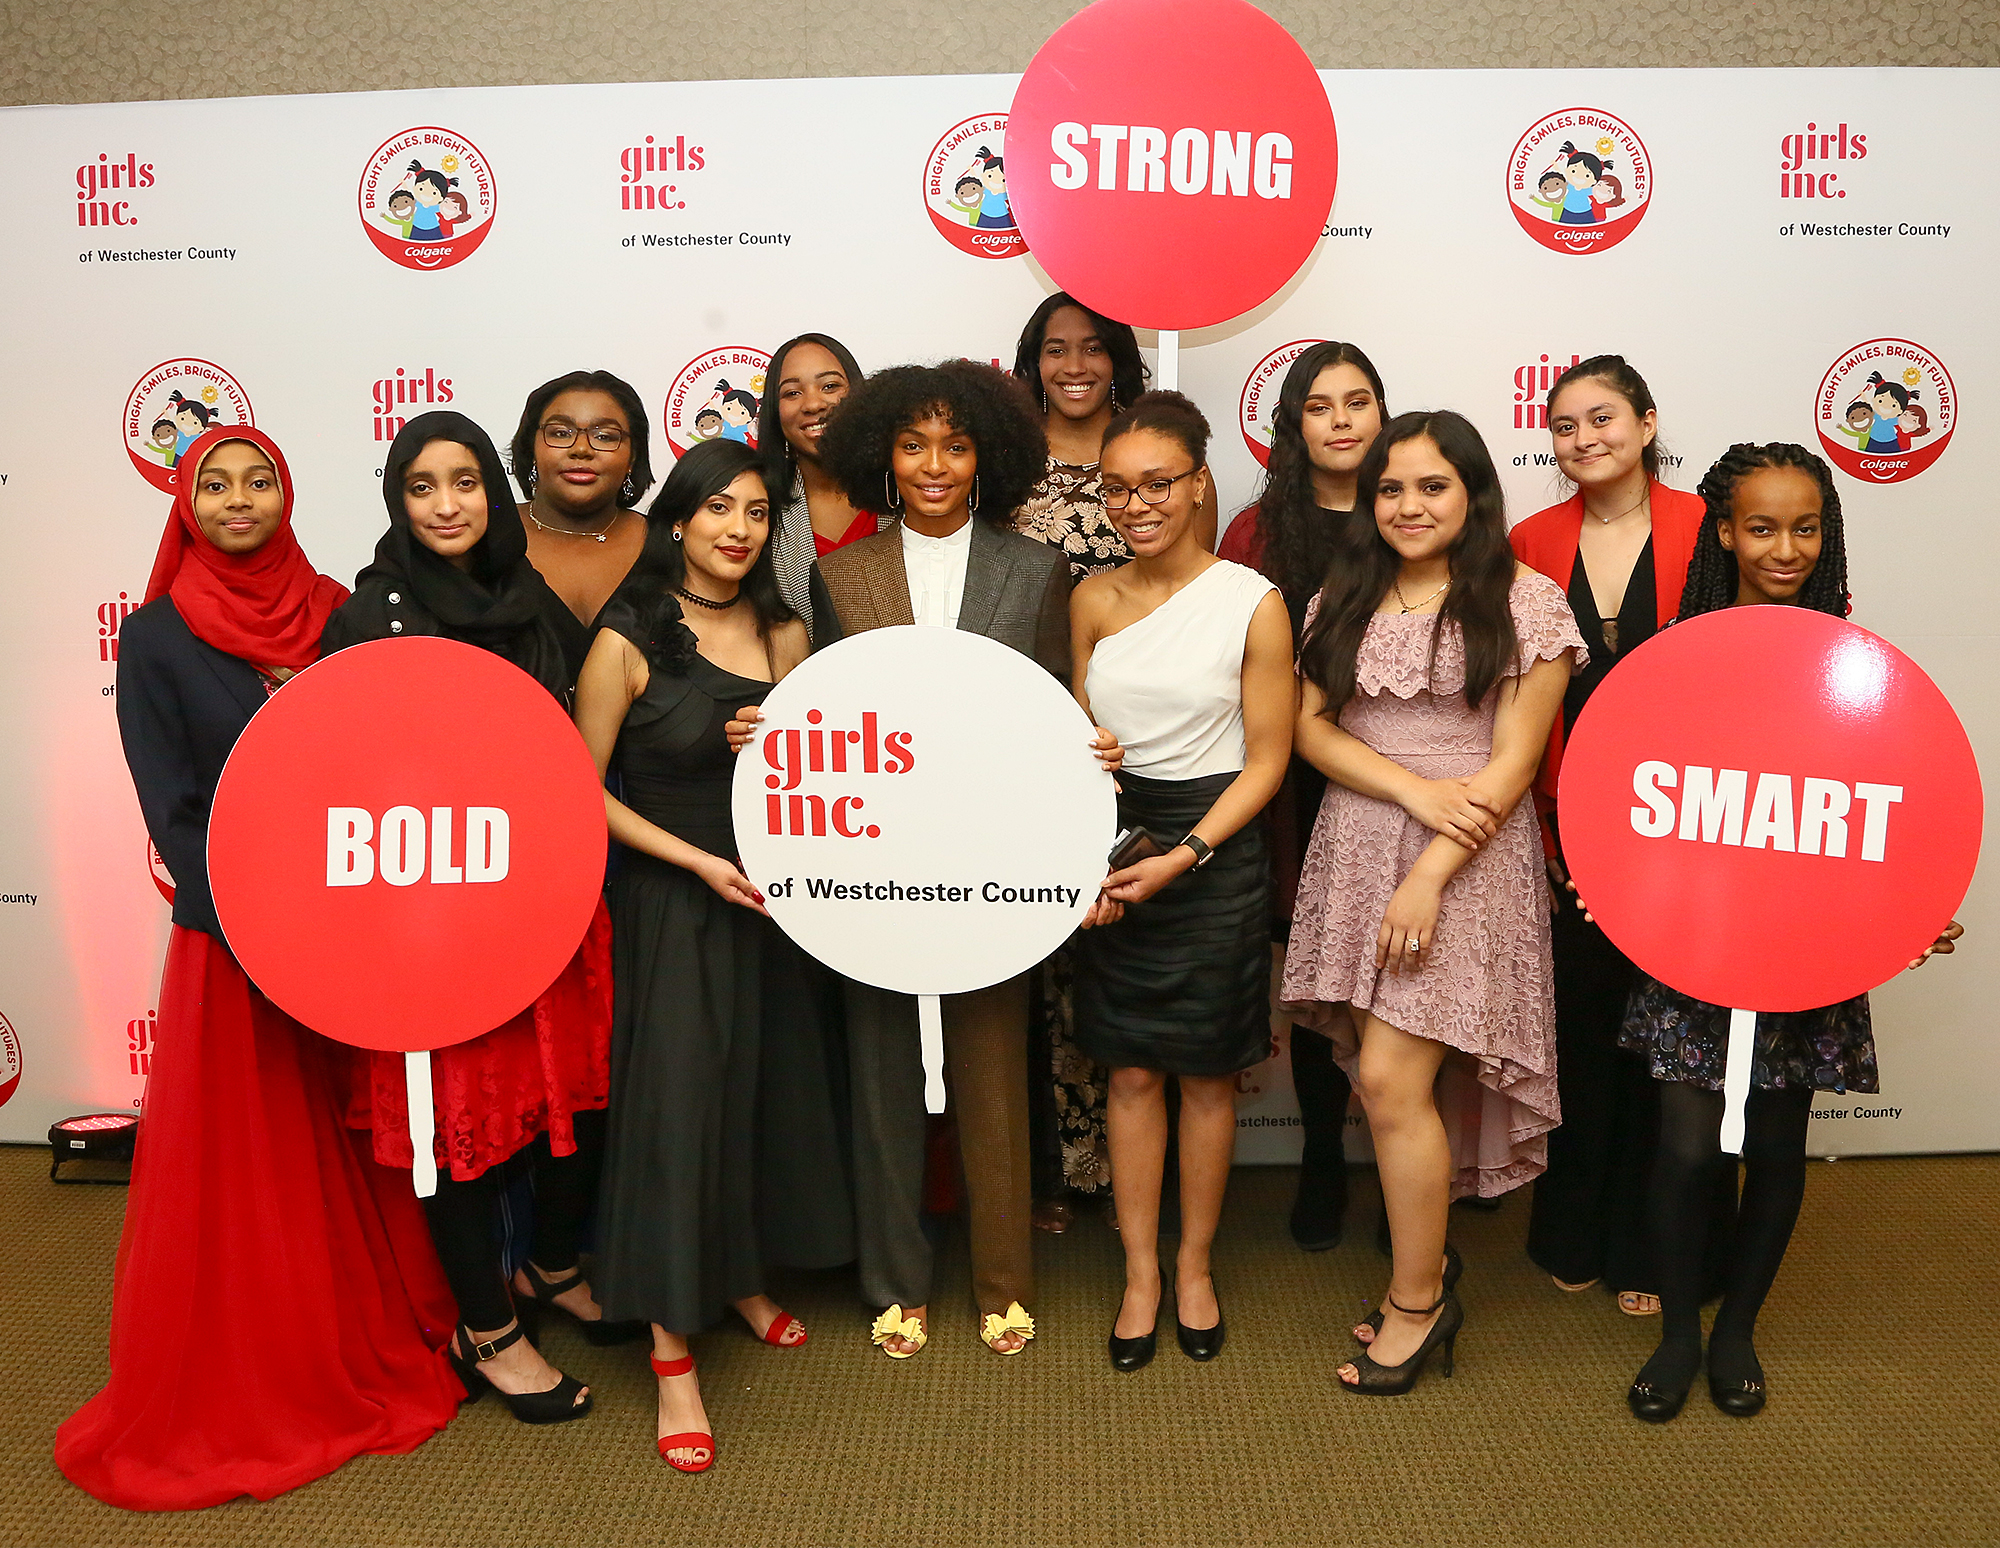 Girls Inc. of Westchester County Annual Gala